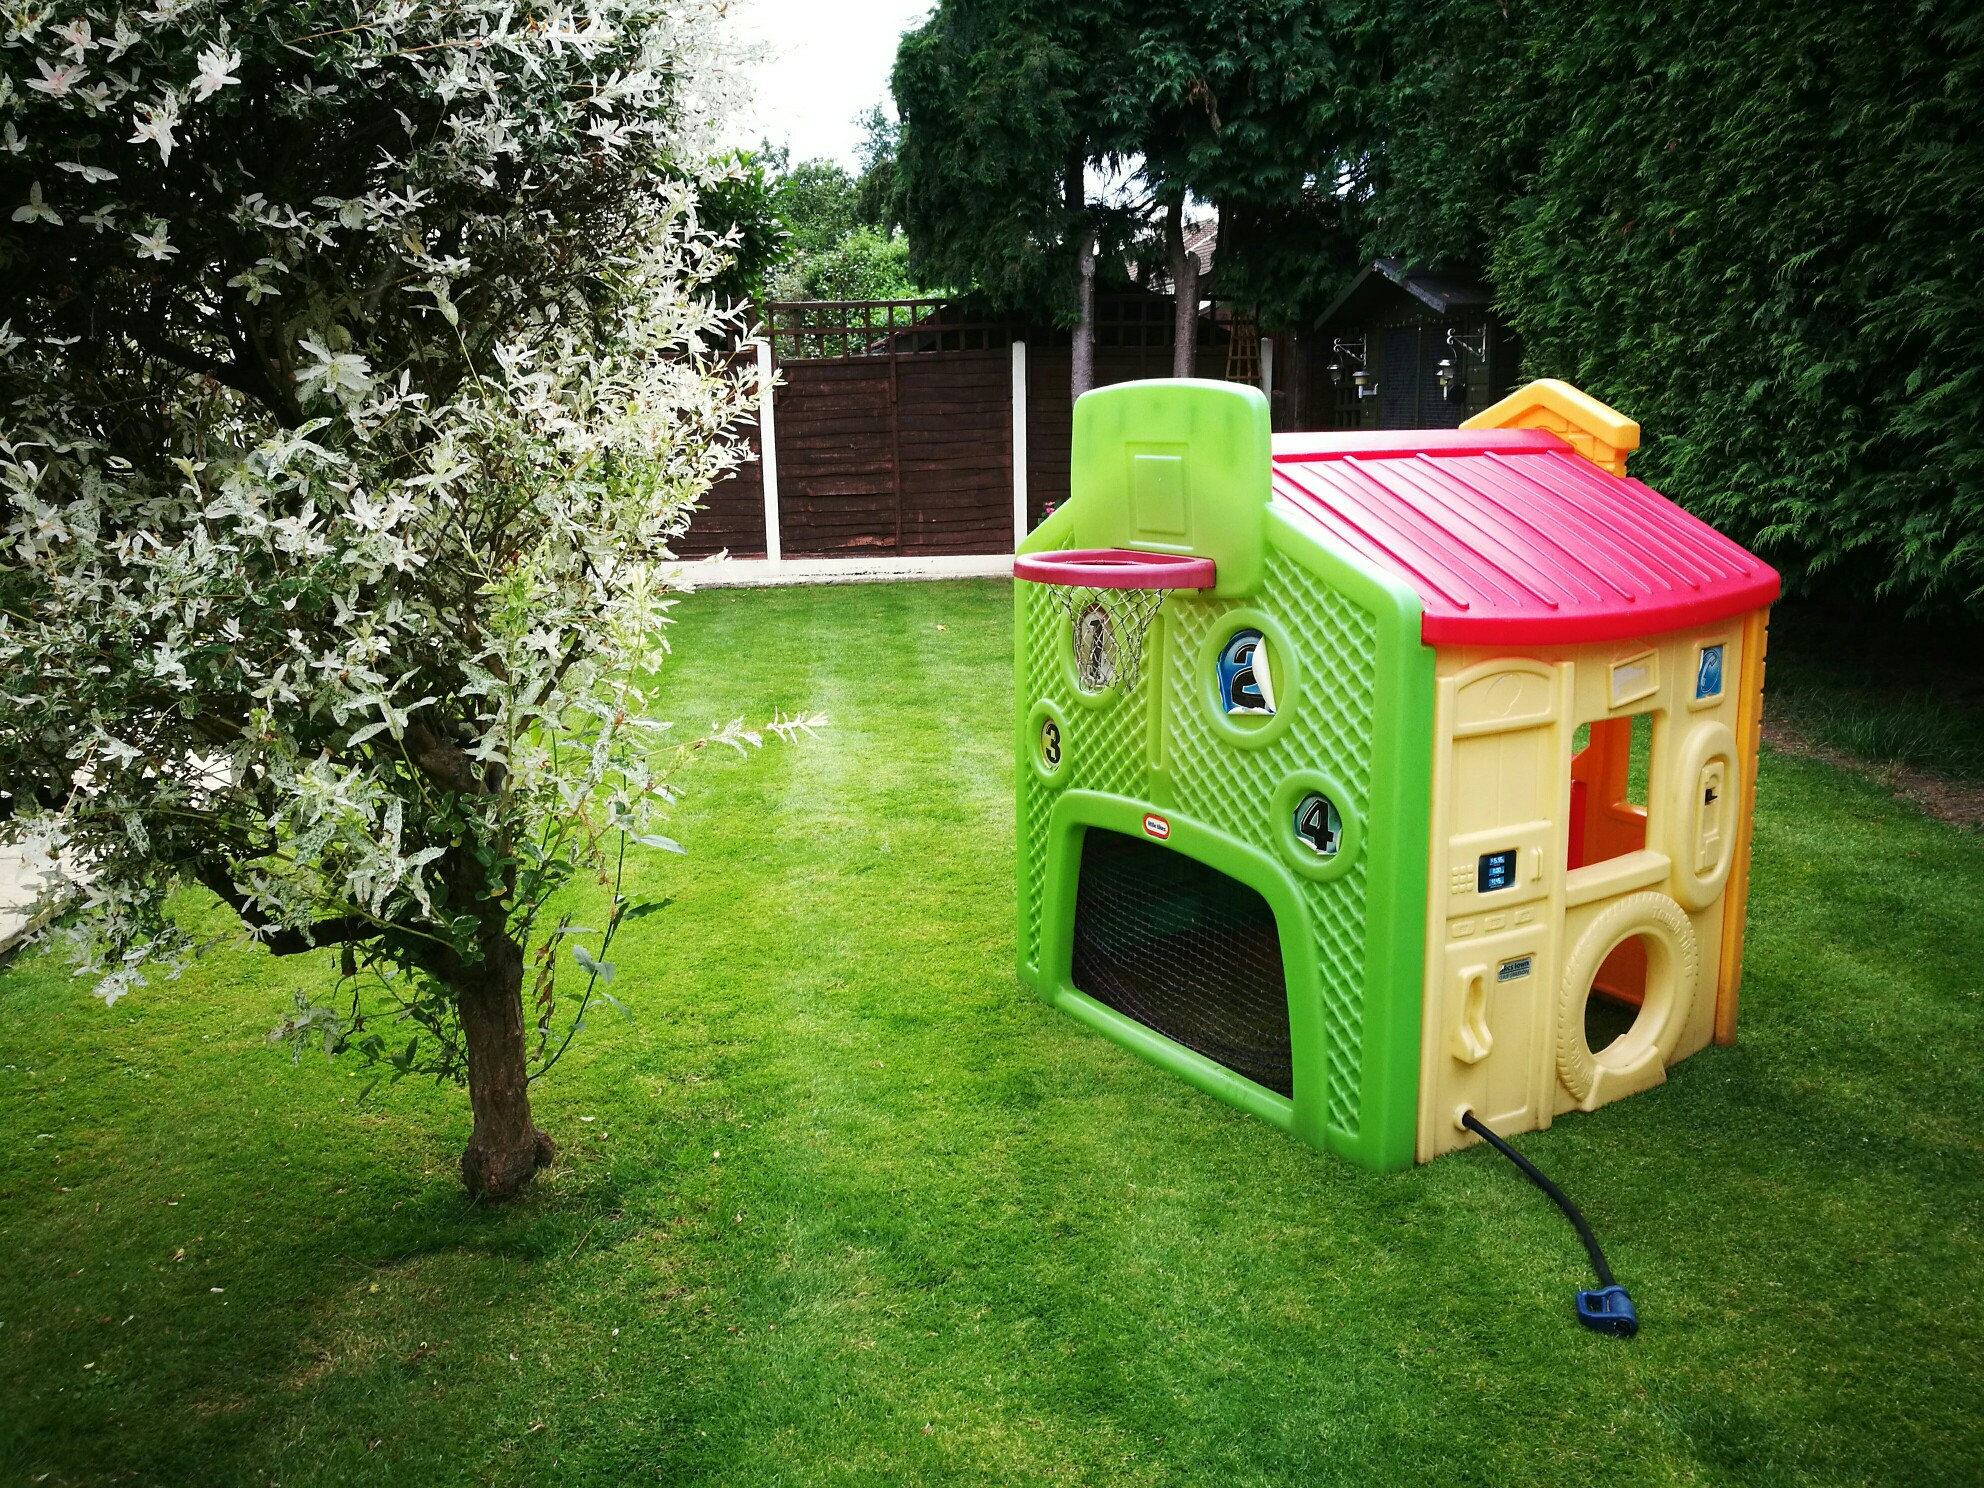 Outdoor playhouse for sale in uk view 98 bargains Outdoor playhouse for sale used